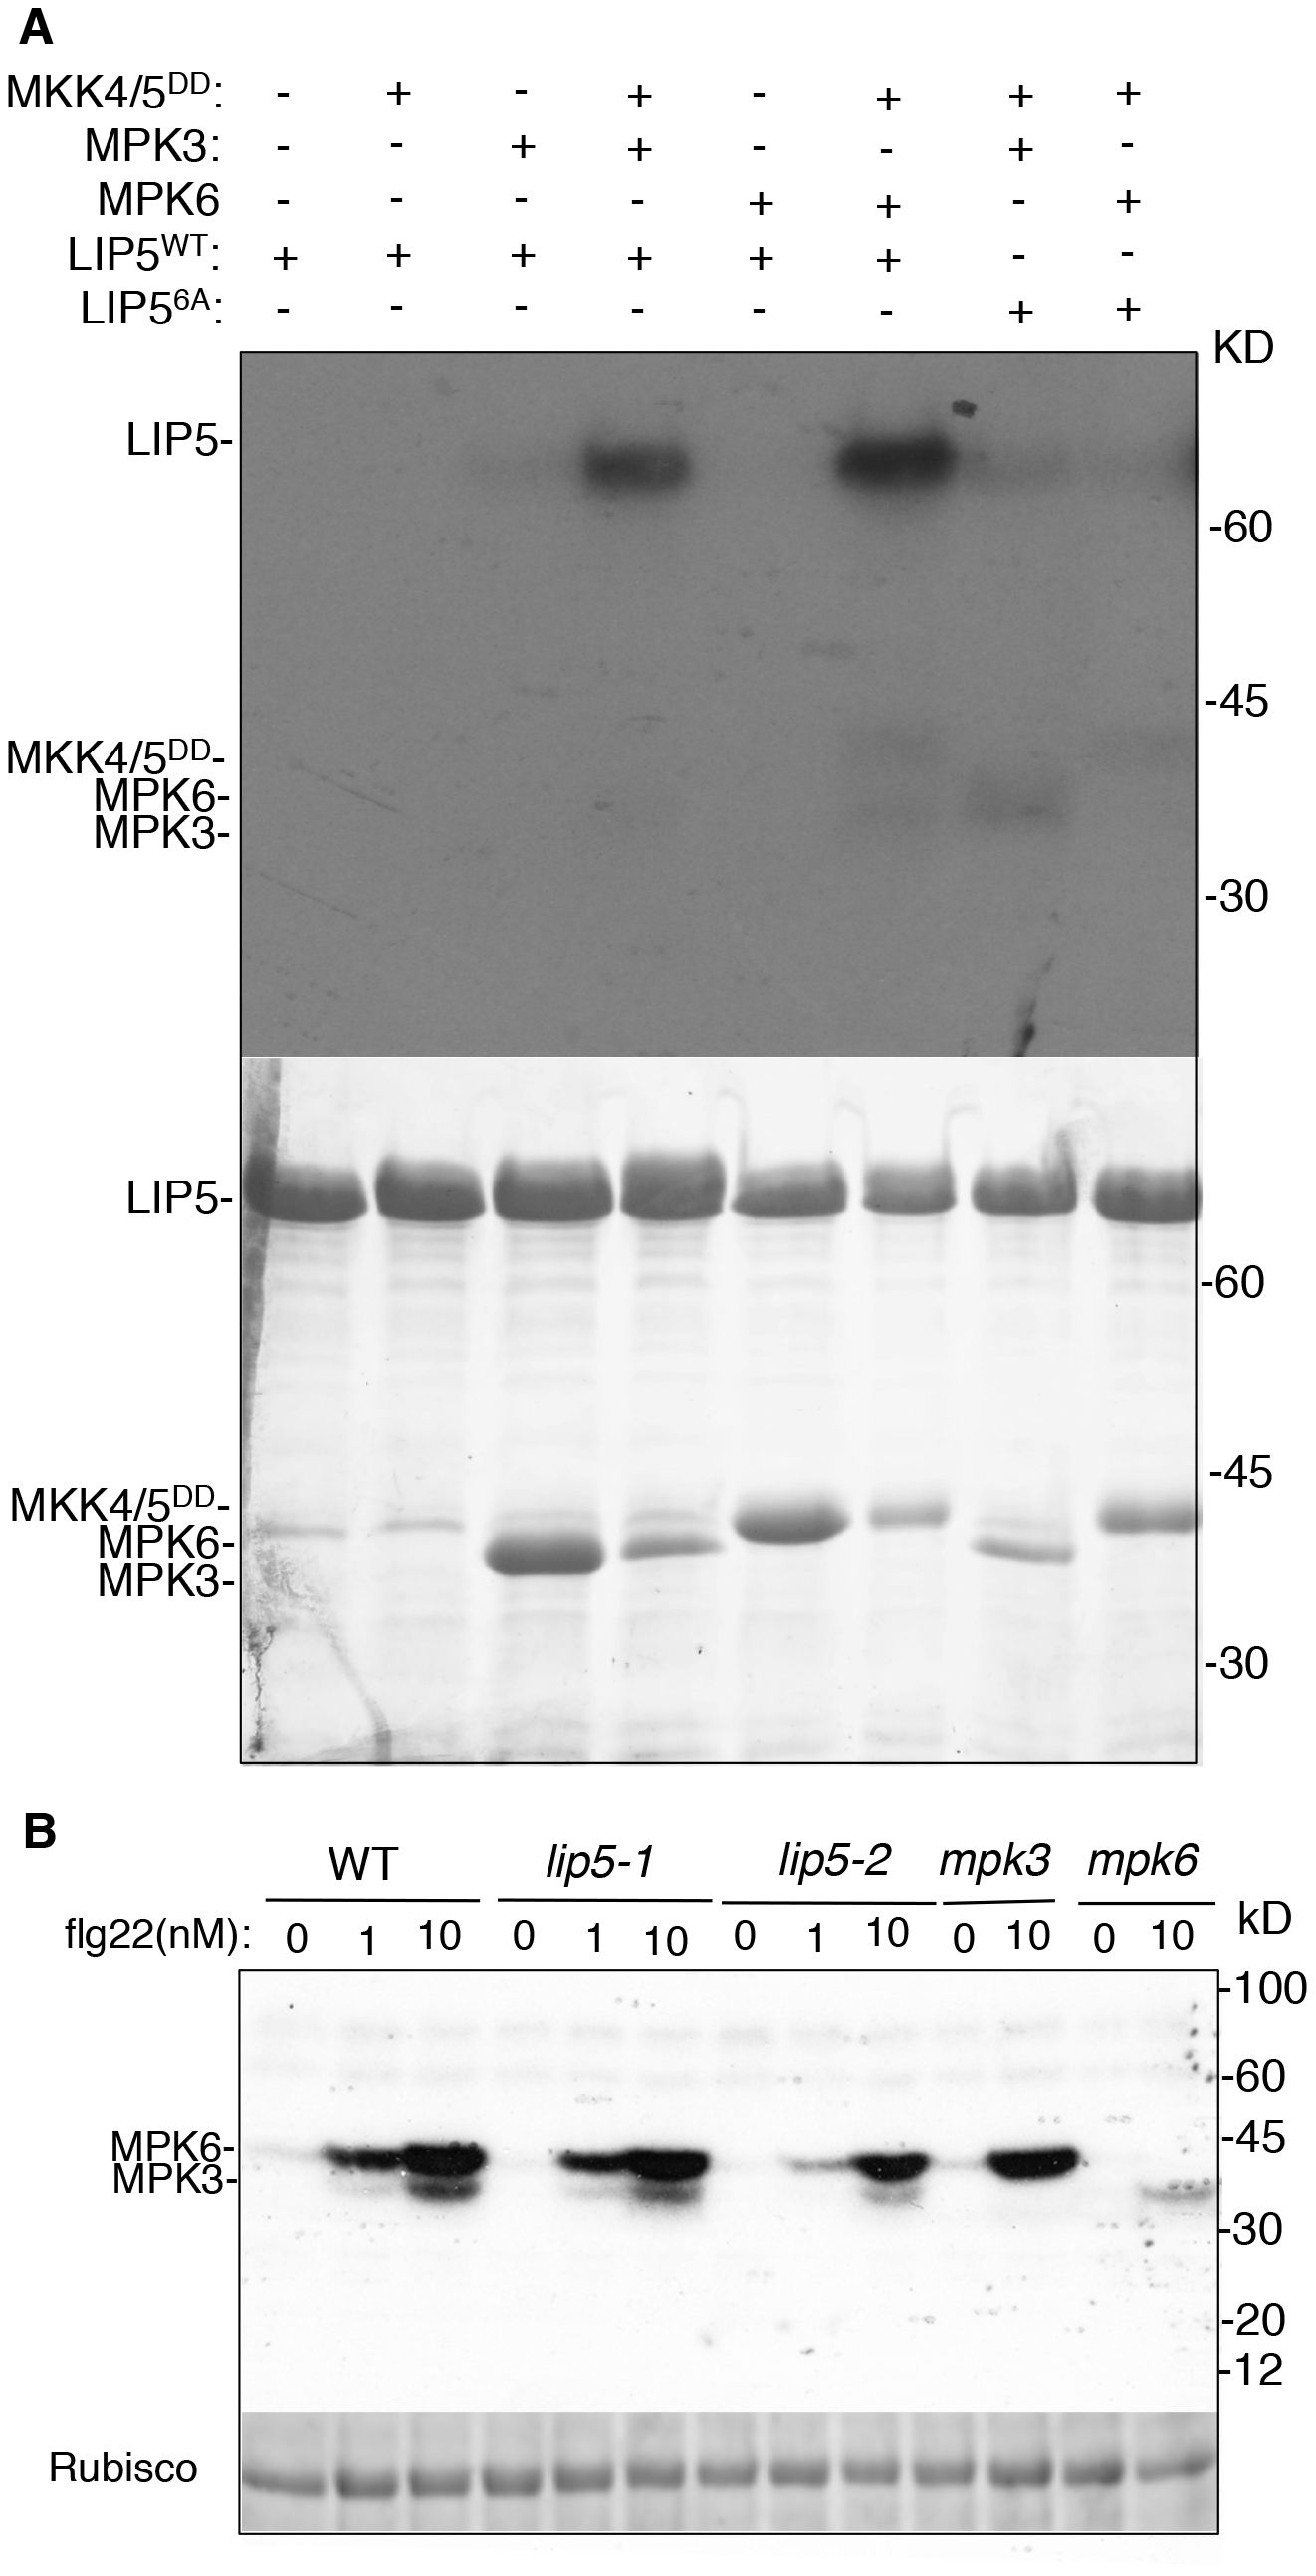 <i>In vitro</i> phosphorylation of LIP5 by MPK6 and MPK3.